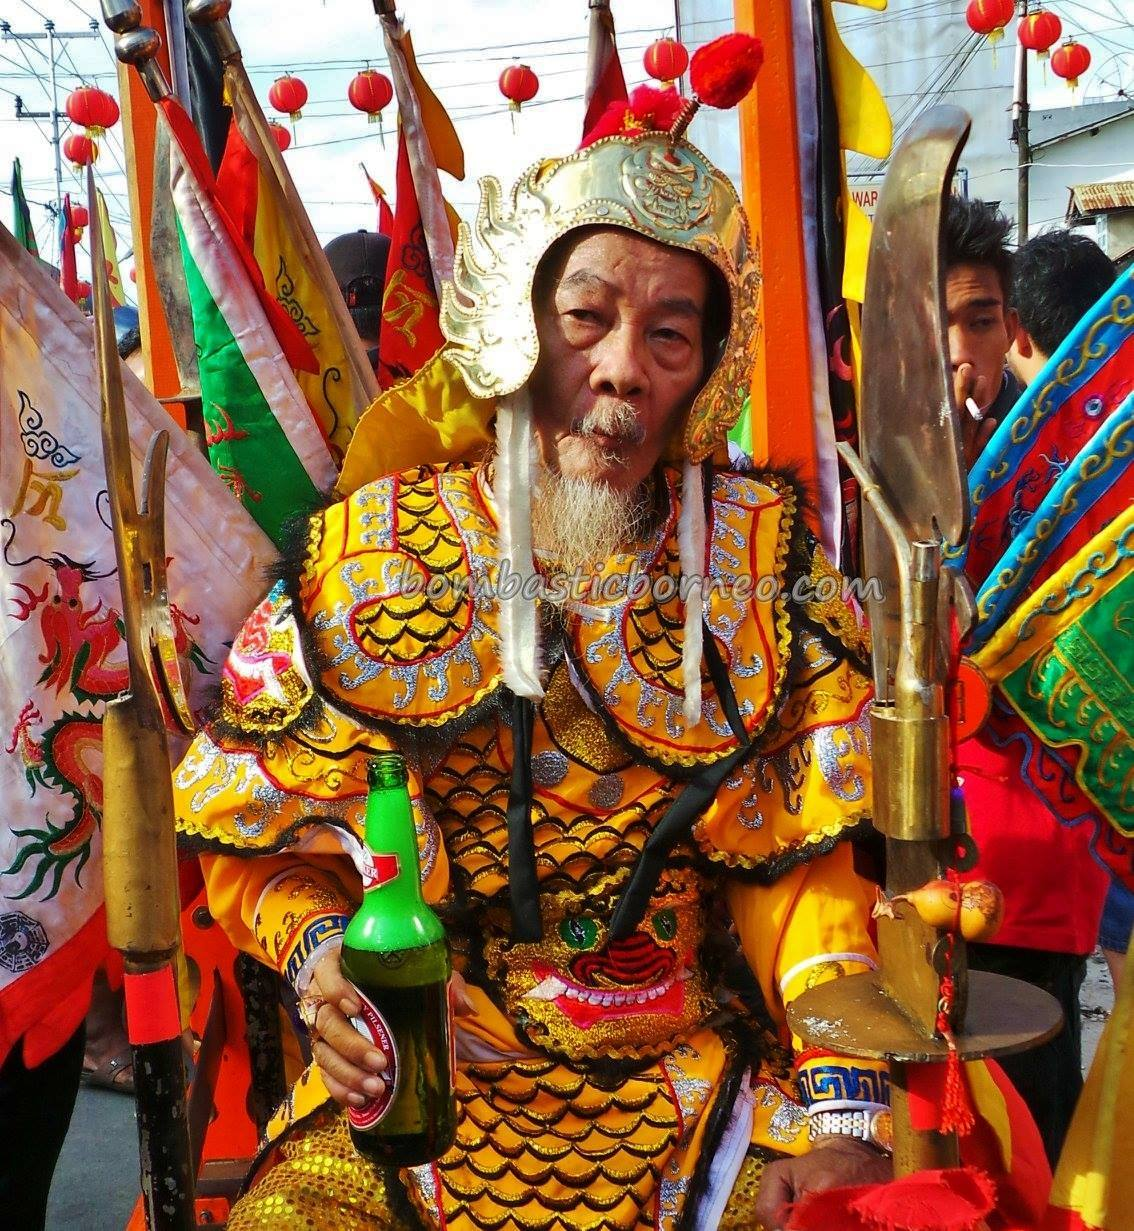 Tatung, medium, trance, spiritual, culture, wisata budaya, Chinese New Year, traditional, Dewa Dewi, Tourism, tourist attraction, travel guide, Trans Borneo, 婆罗洲西加里曼丹, 山口洋传统乩童, 印尼华人元宵节,